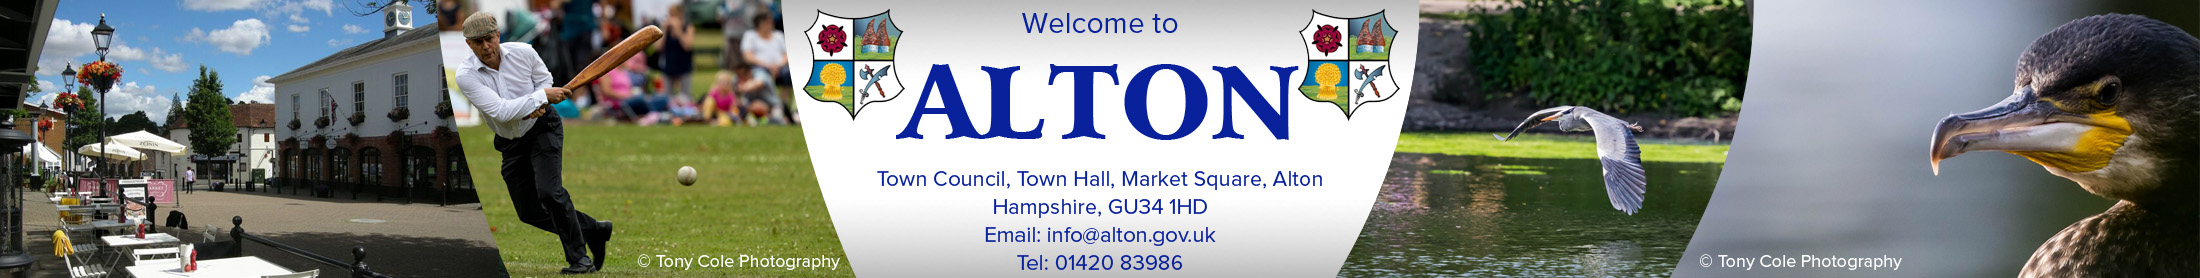 Header Image for Alton Town Council